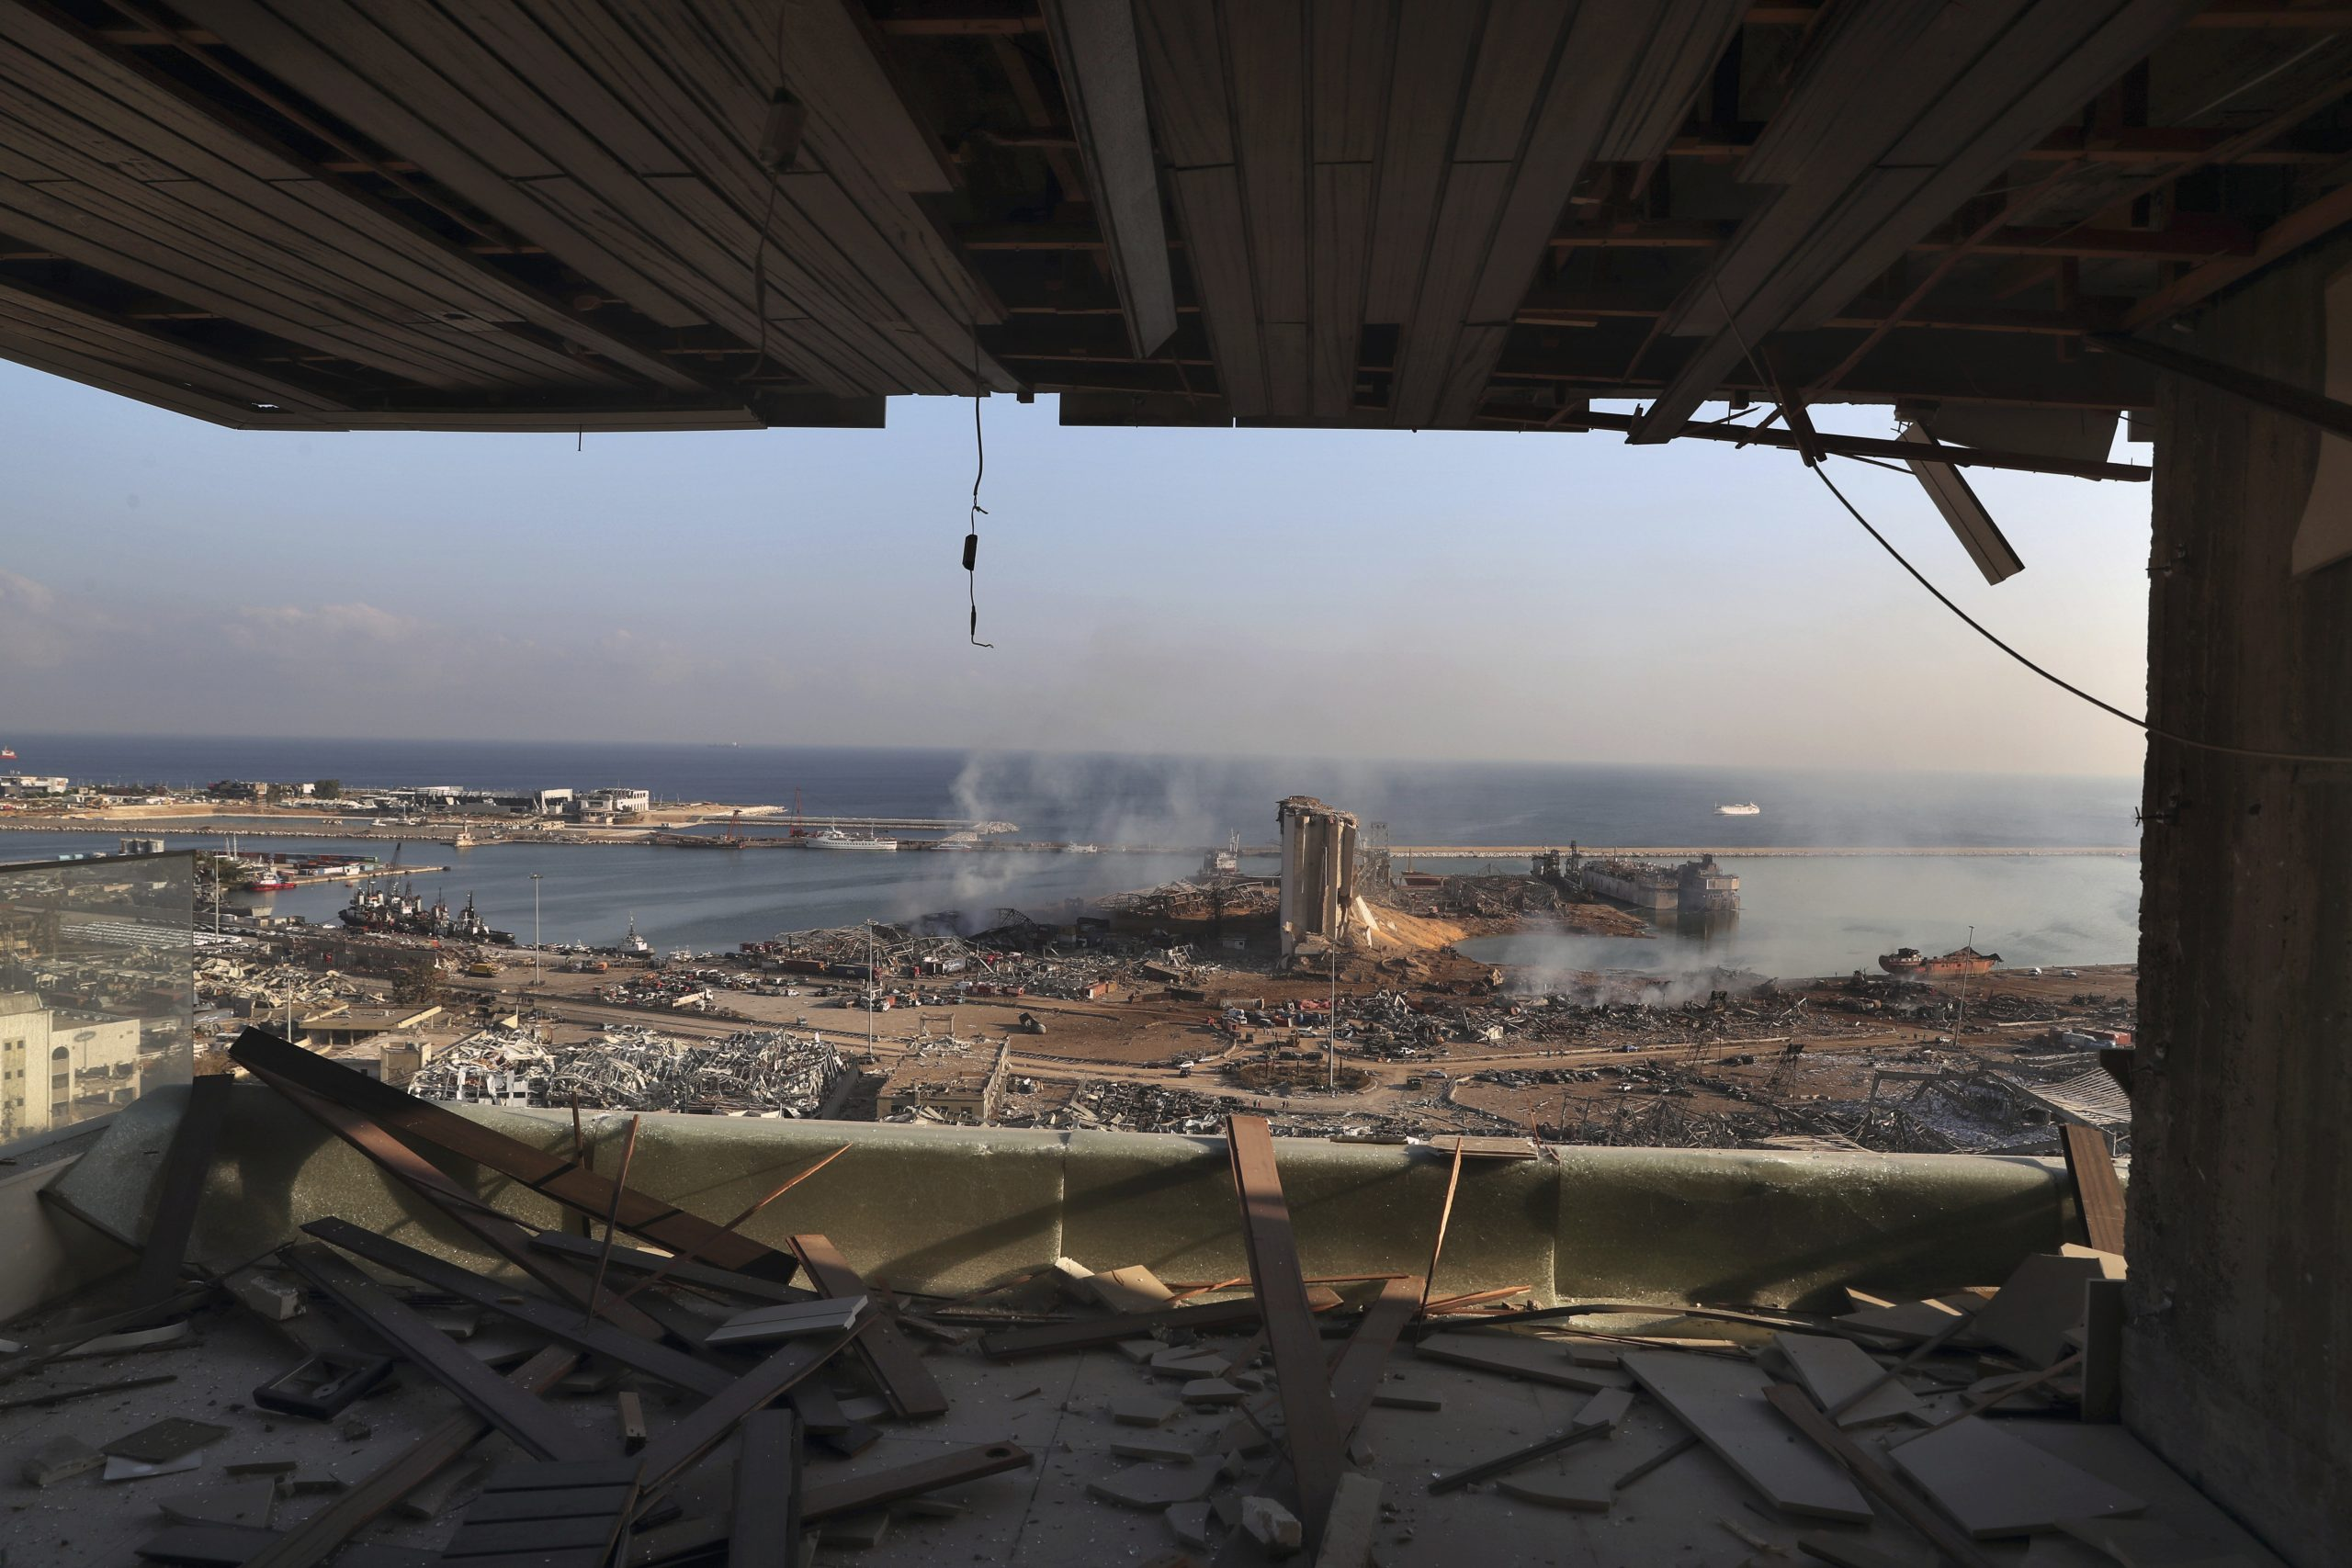 Hungary Embassy Damaged in Beirut Blast, No Hungarian Casualties Reported